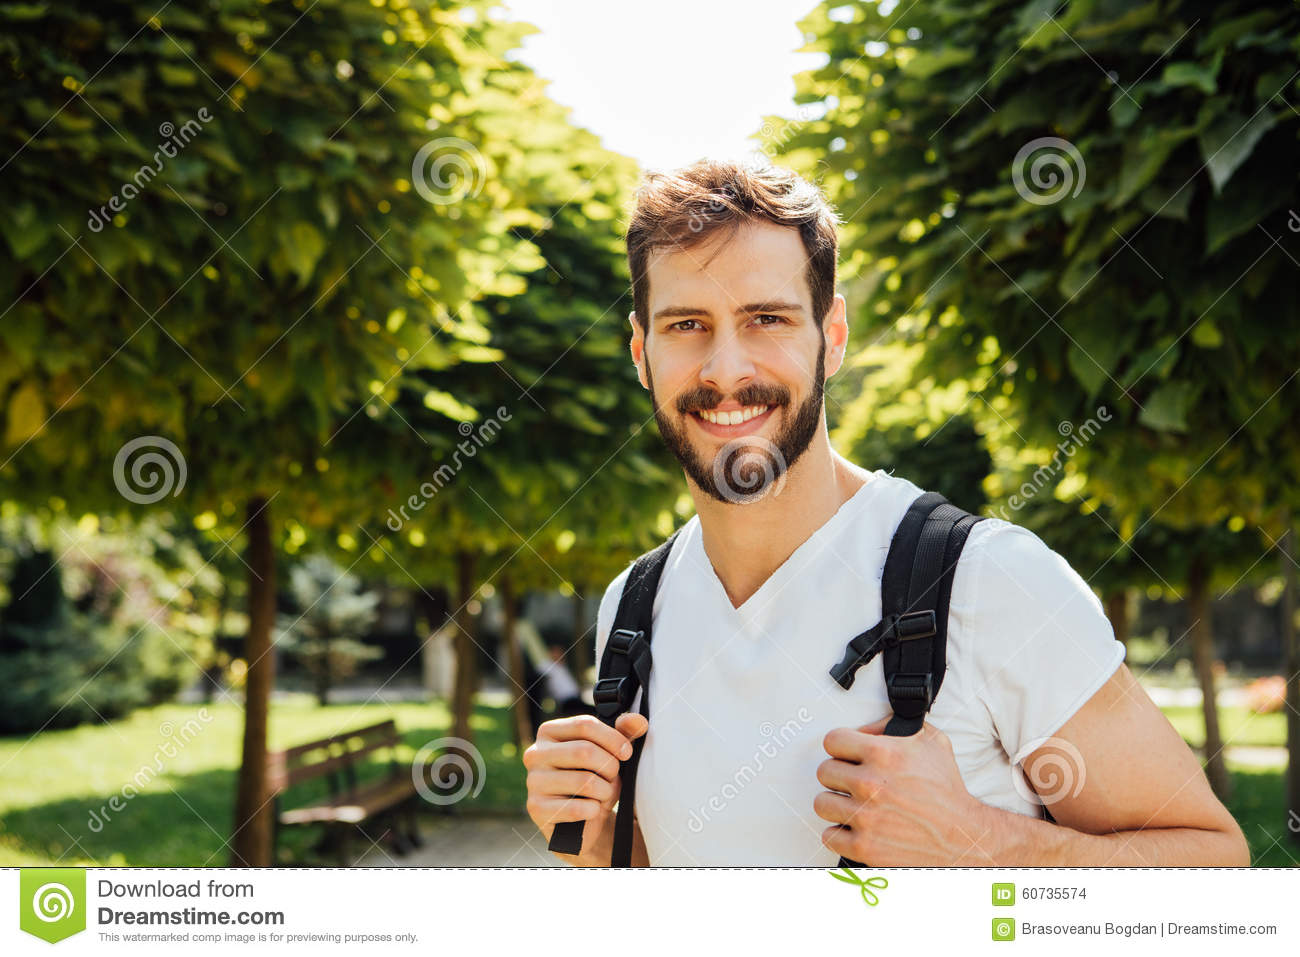 Student with backpack outside